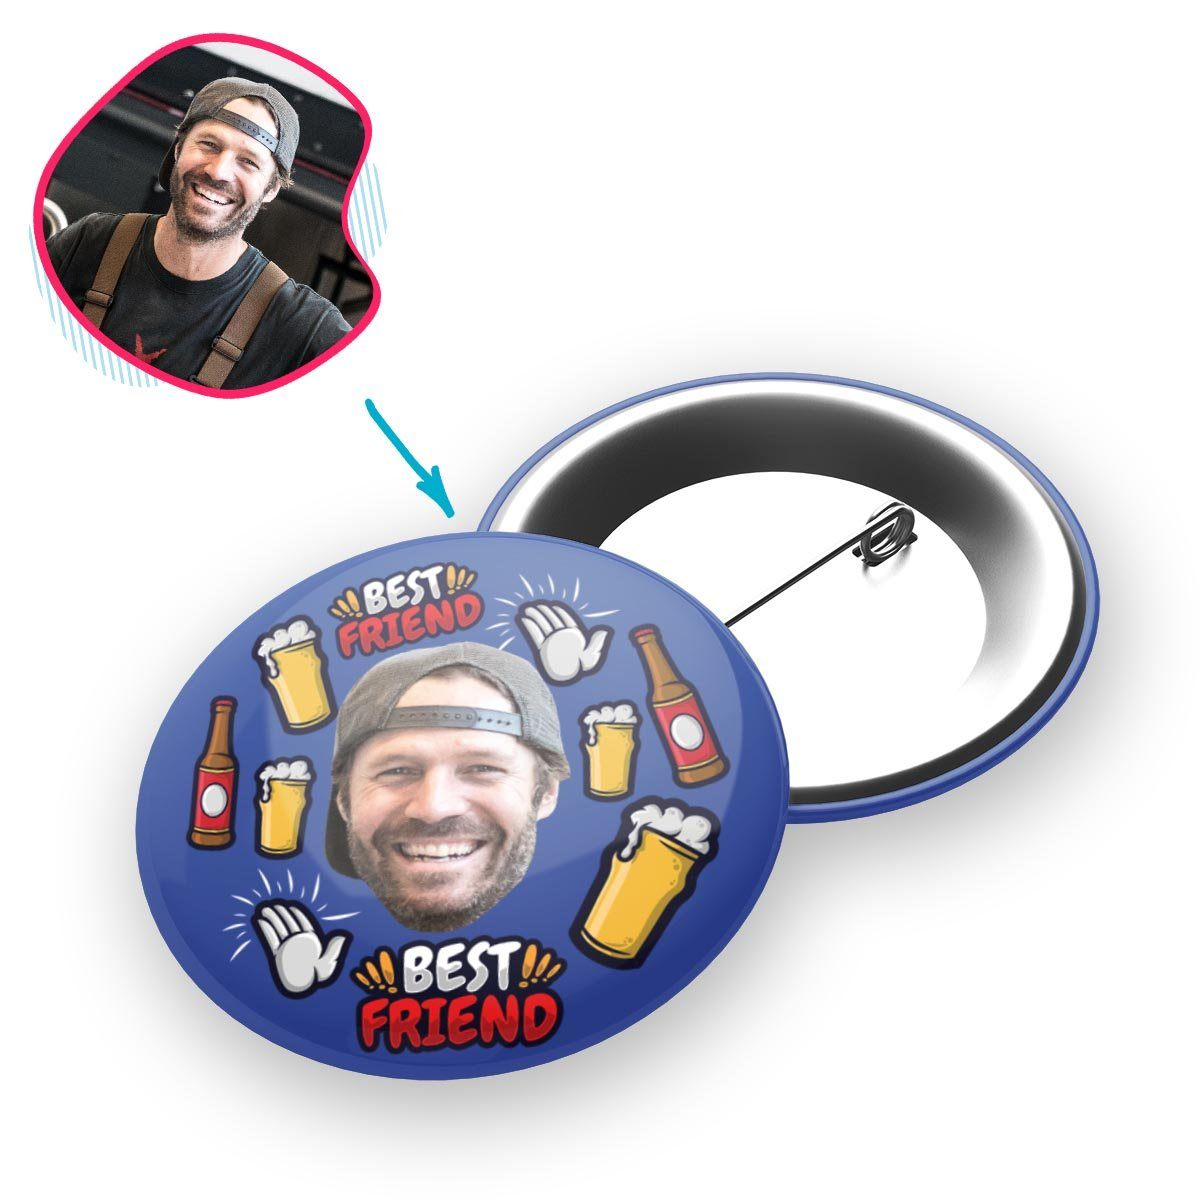 darkblue BFF for Him pin personalized with photo of face printed on it